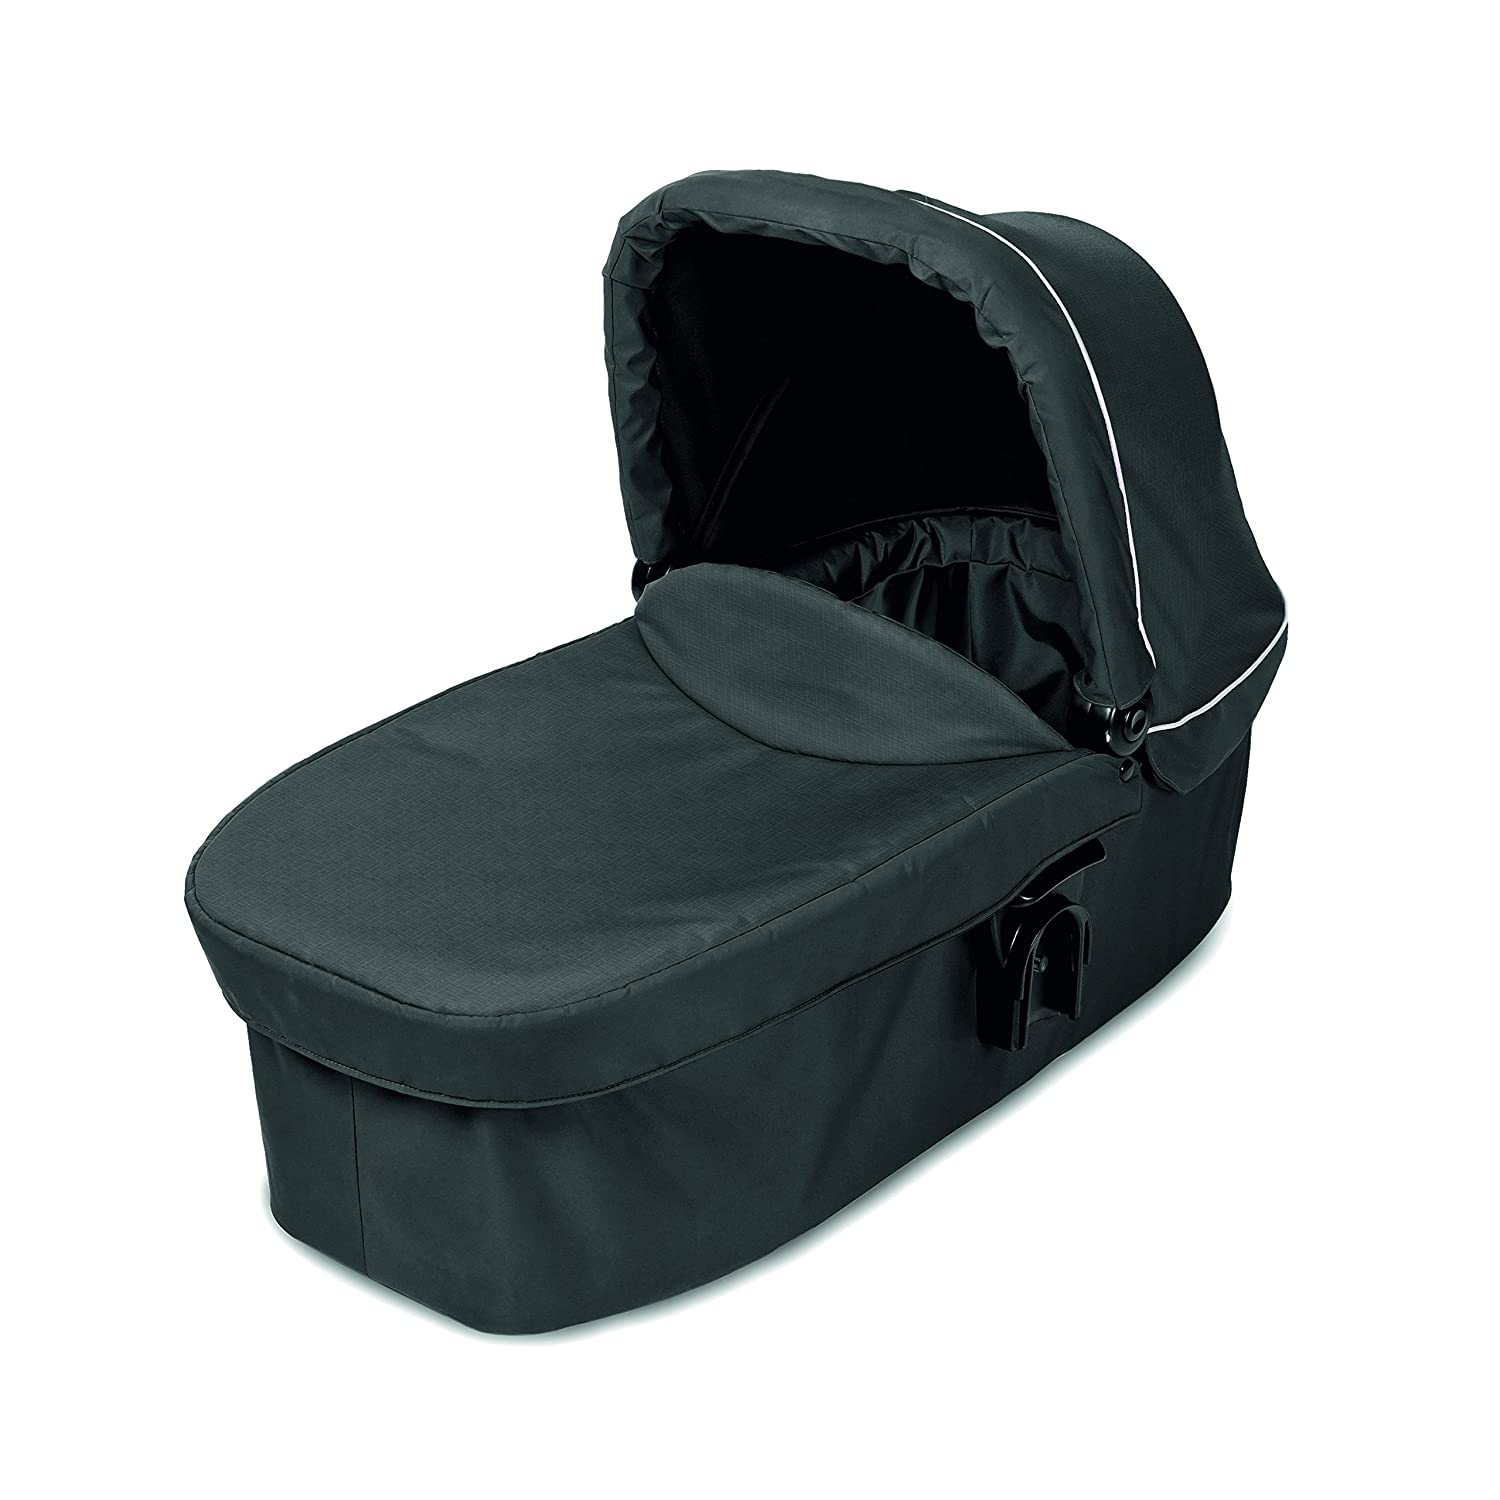 Graco Evo Carrycot Stand - Black 1865730